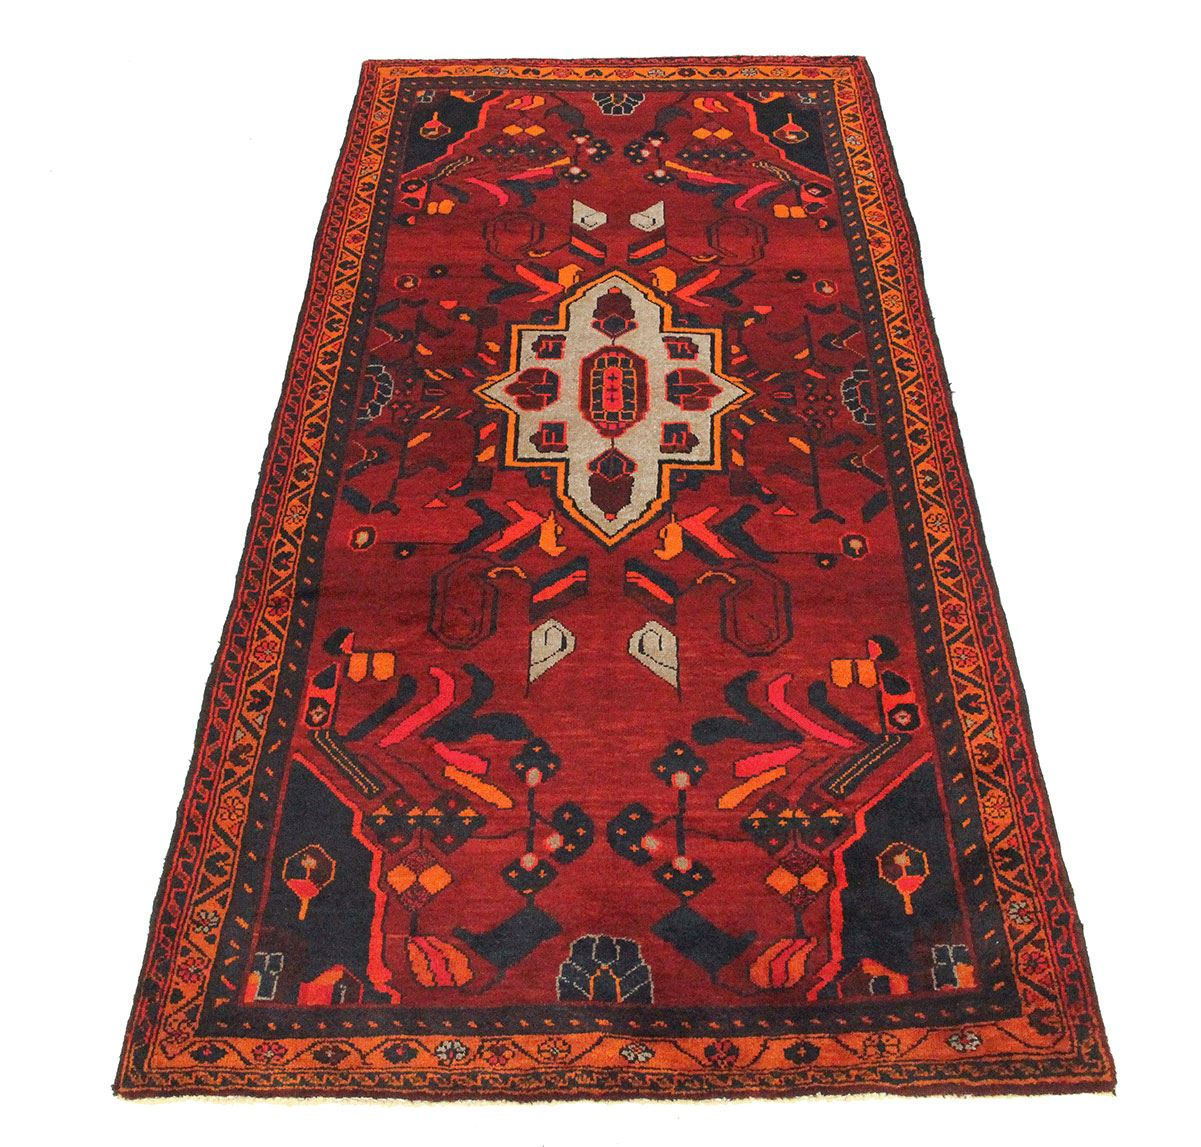 PERSIAN TRADITIONAL ANTIQUE WOOL 300x150 HANDMADE RUGS